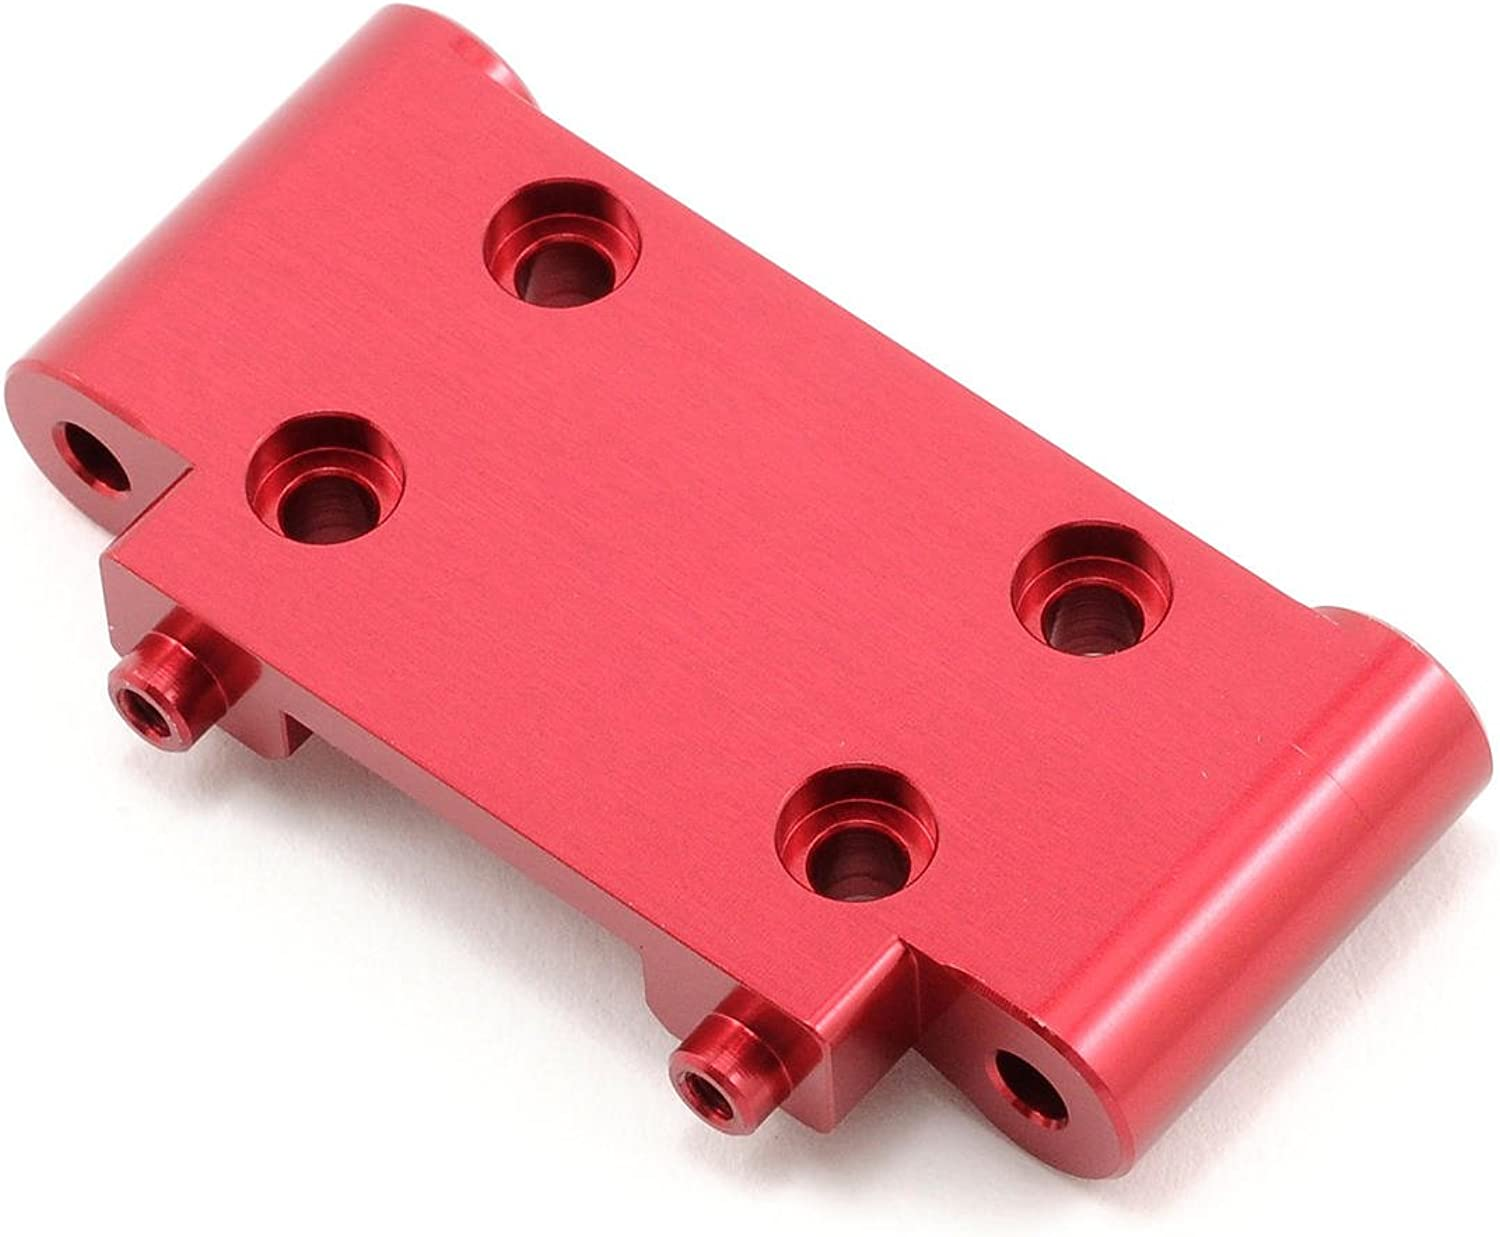 ST Racing Concepts STC9563R Aluminum Front Bulkhead for The SC10, B4 and T4 (Red)